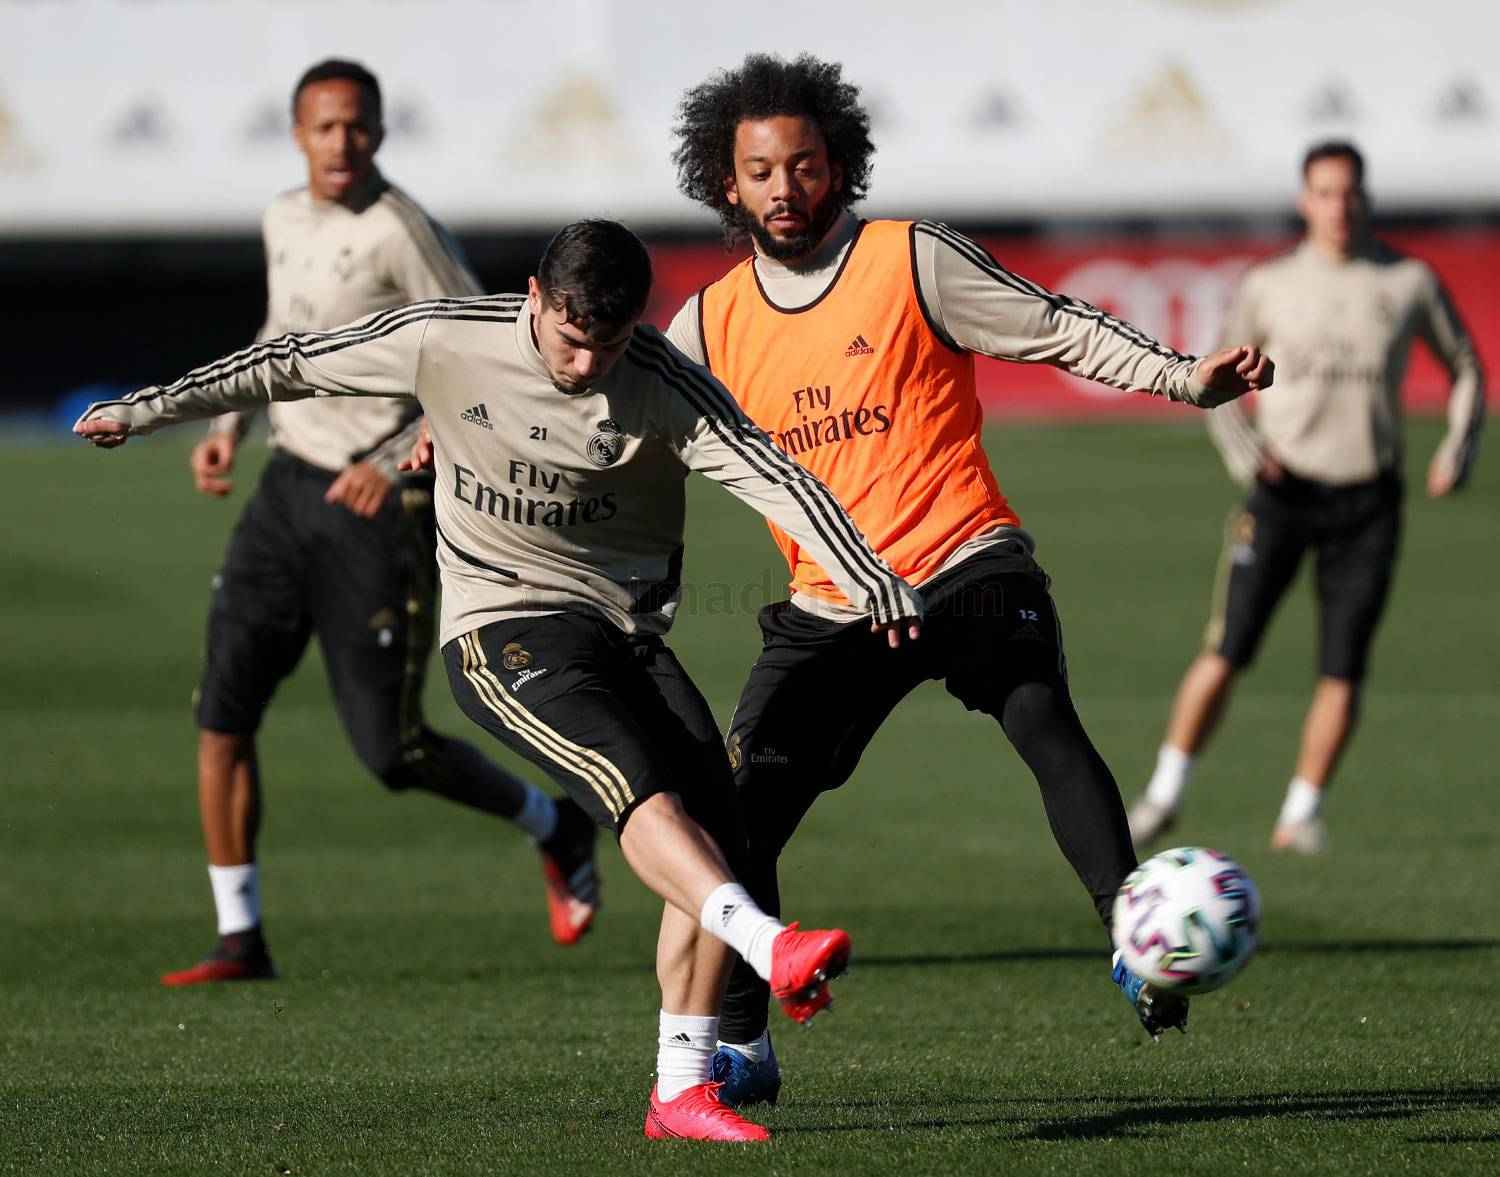 Real Madrid - Entrenamiento del Real Madrid  - 05-02-2020